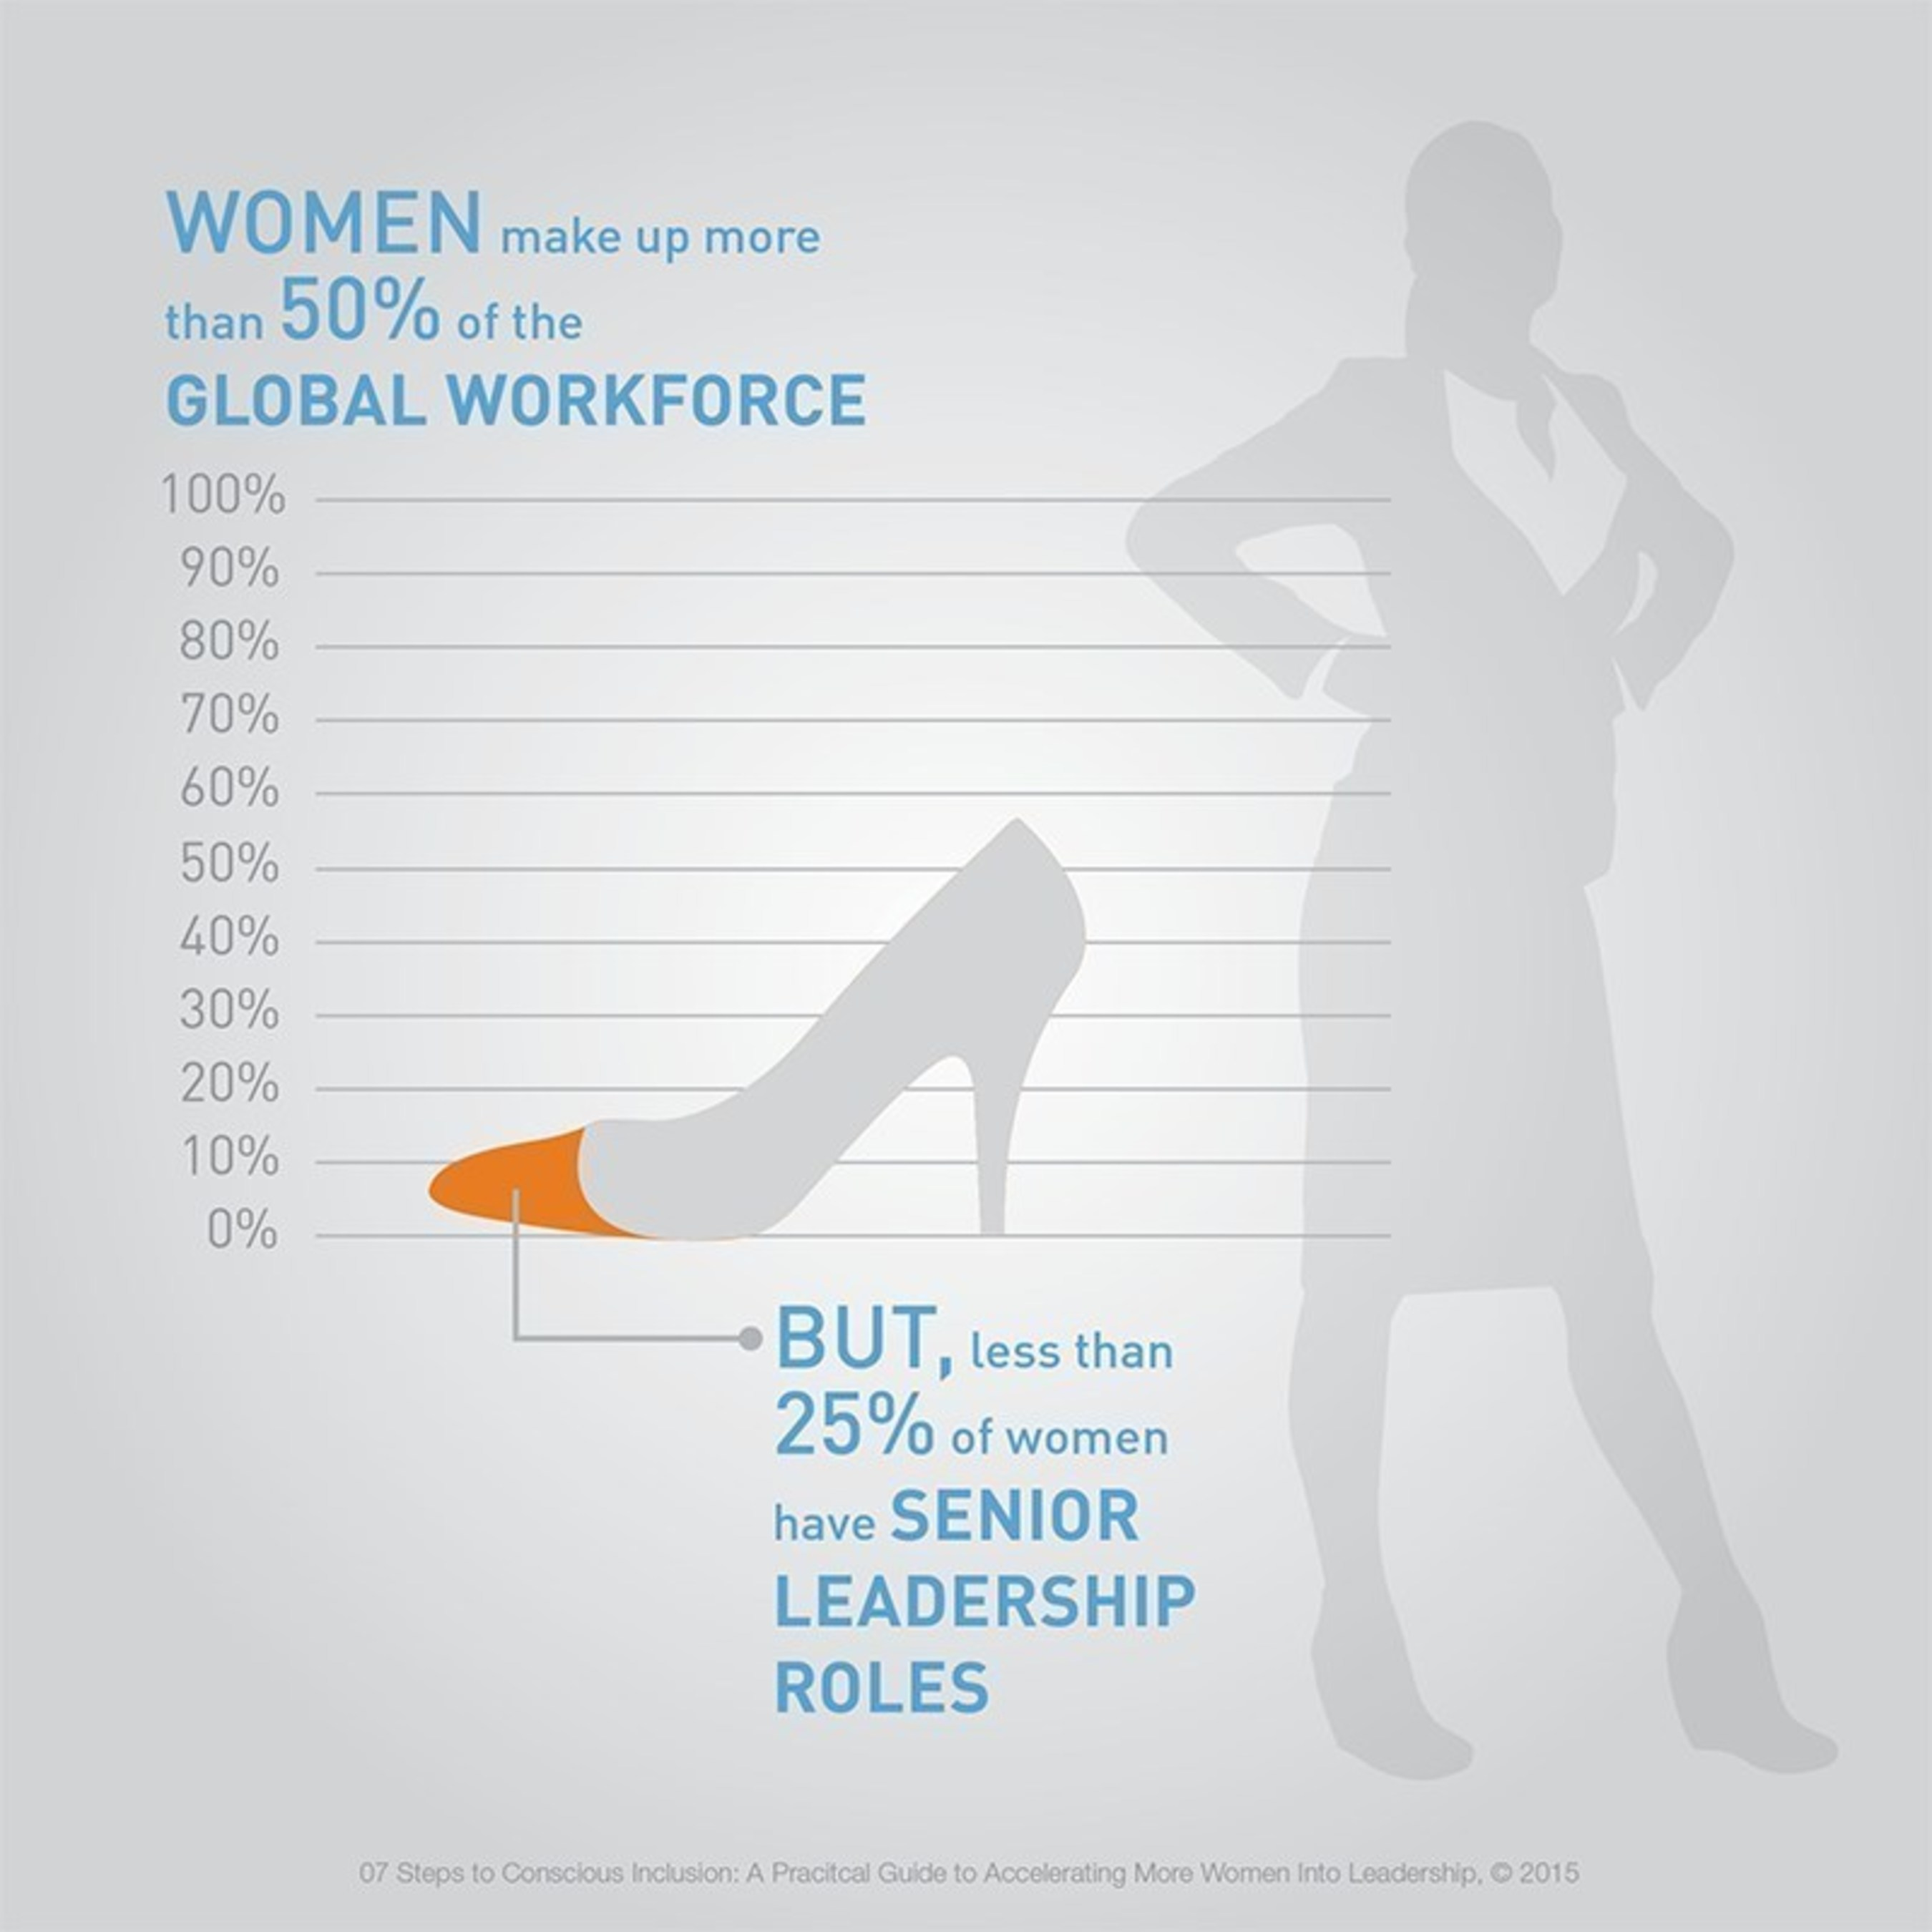 New ManpowerGroup report reveals practical solutions for accelerating women into leadership.